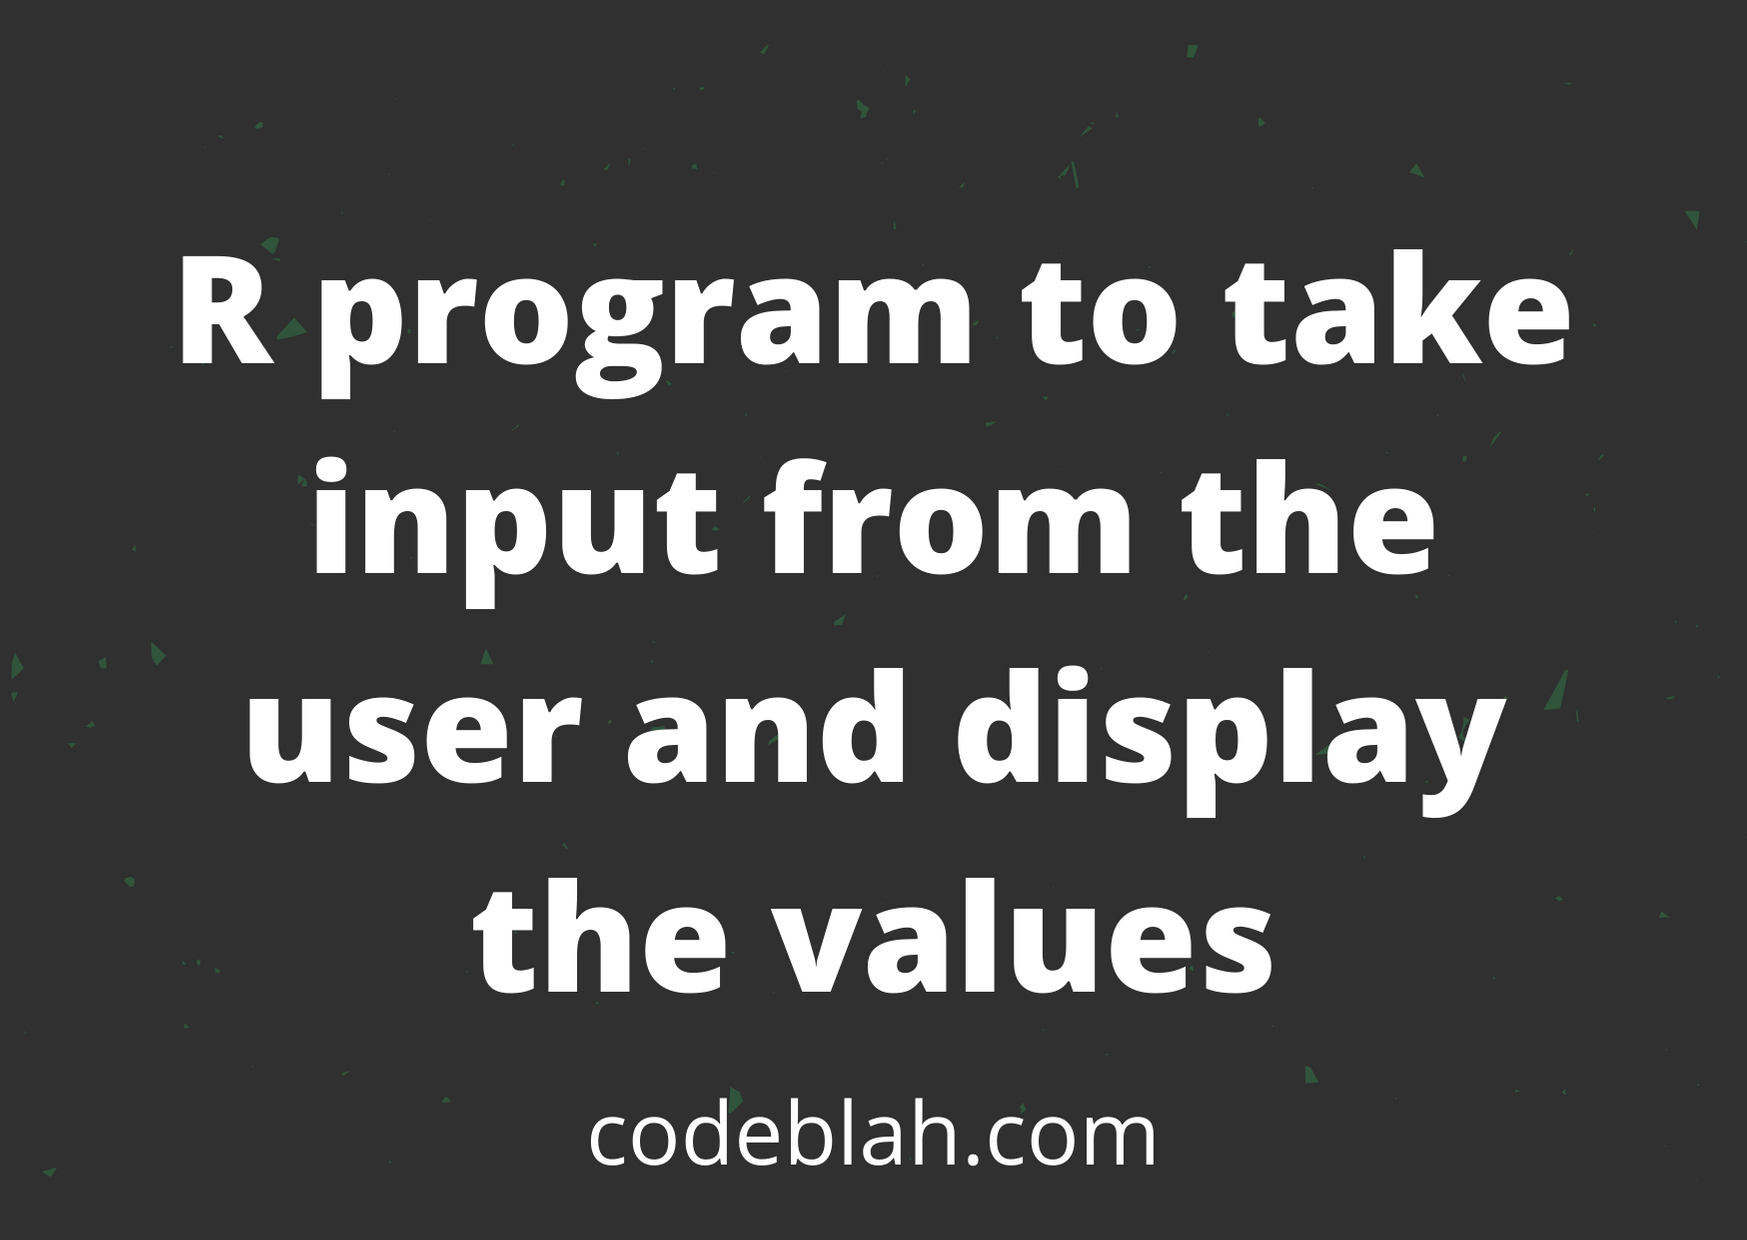 R Program to Take Input From User